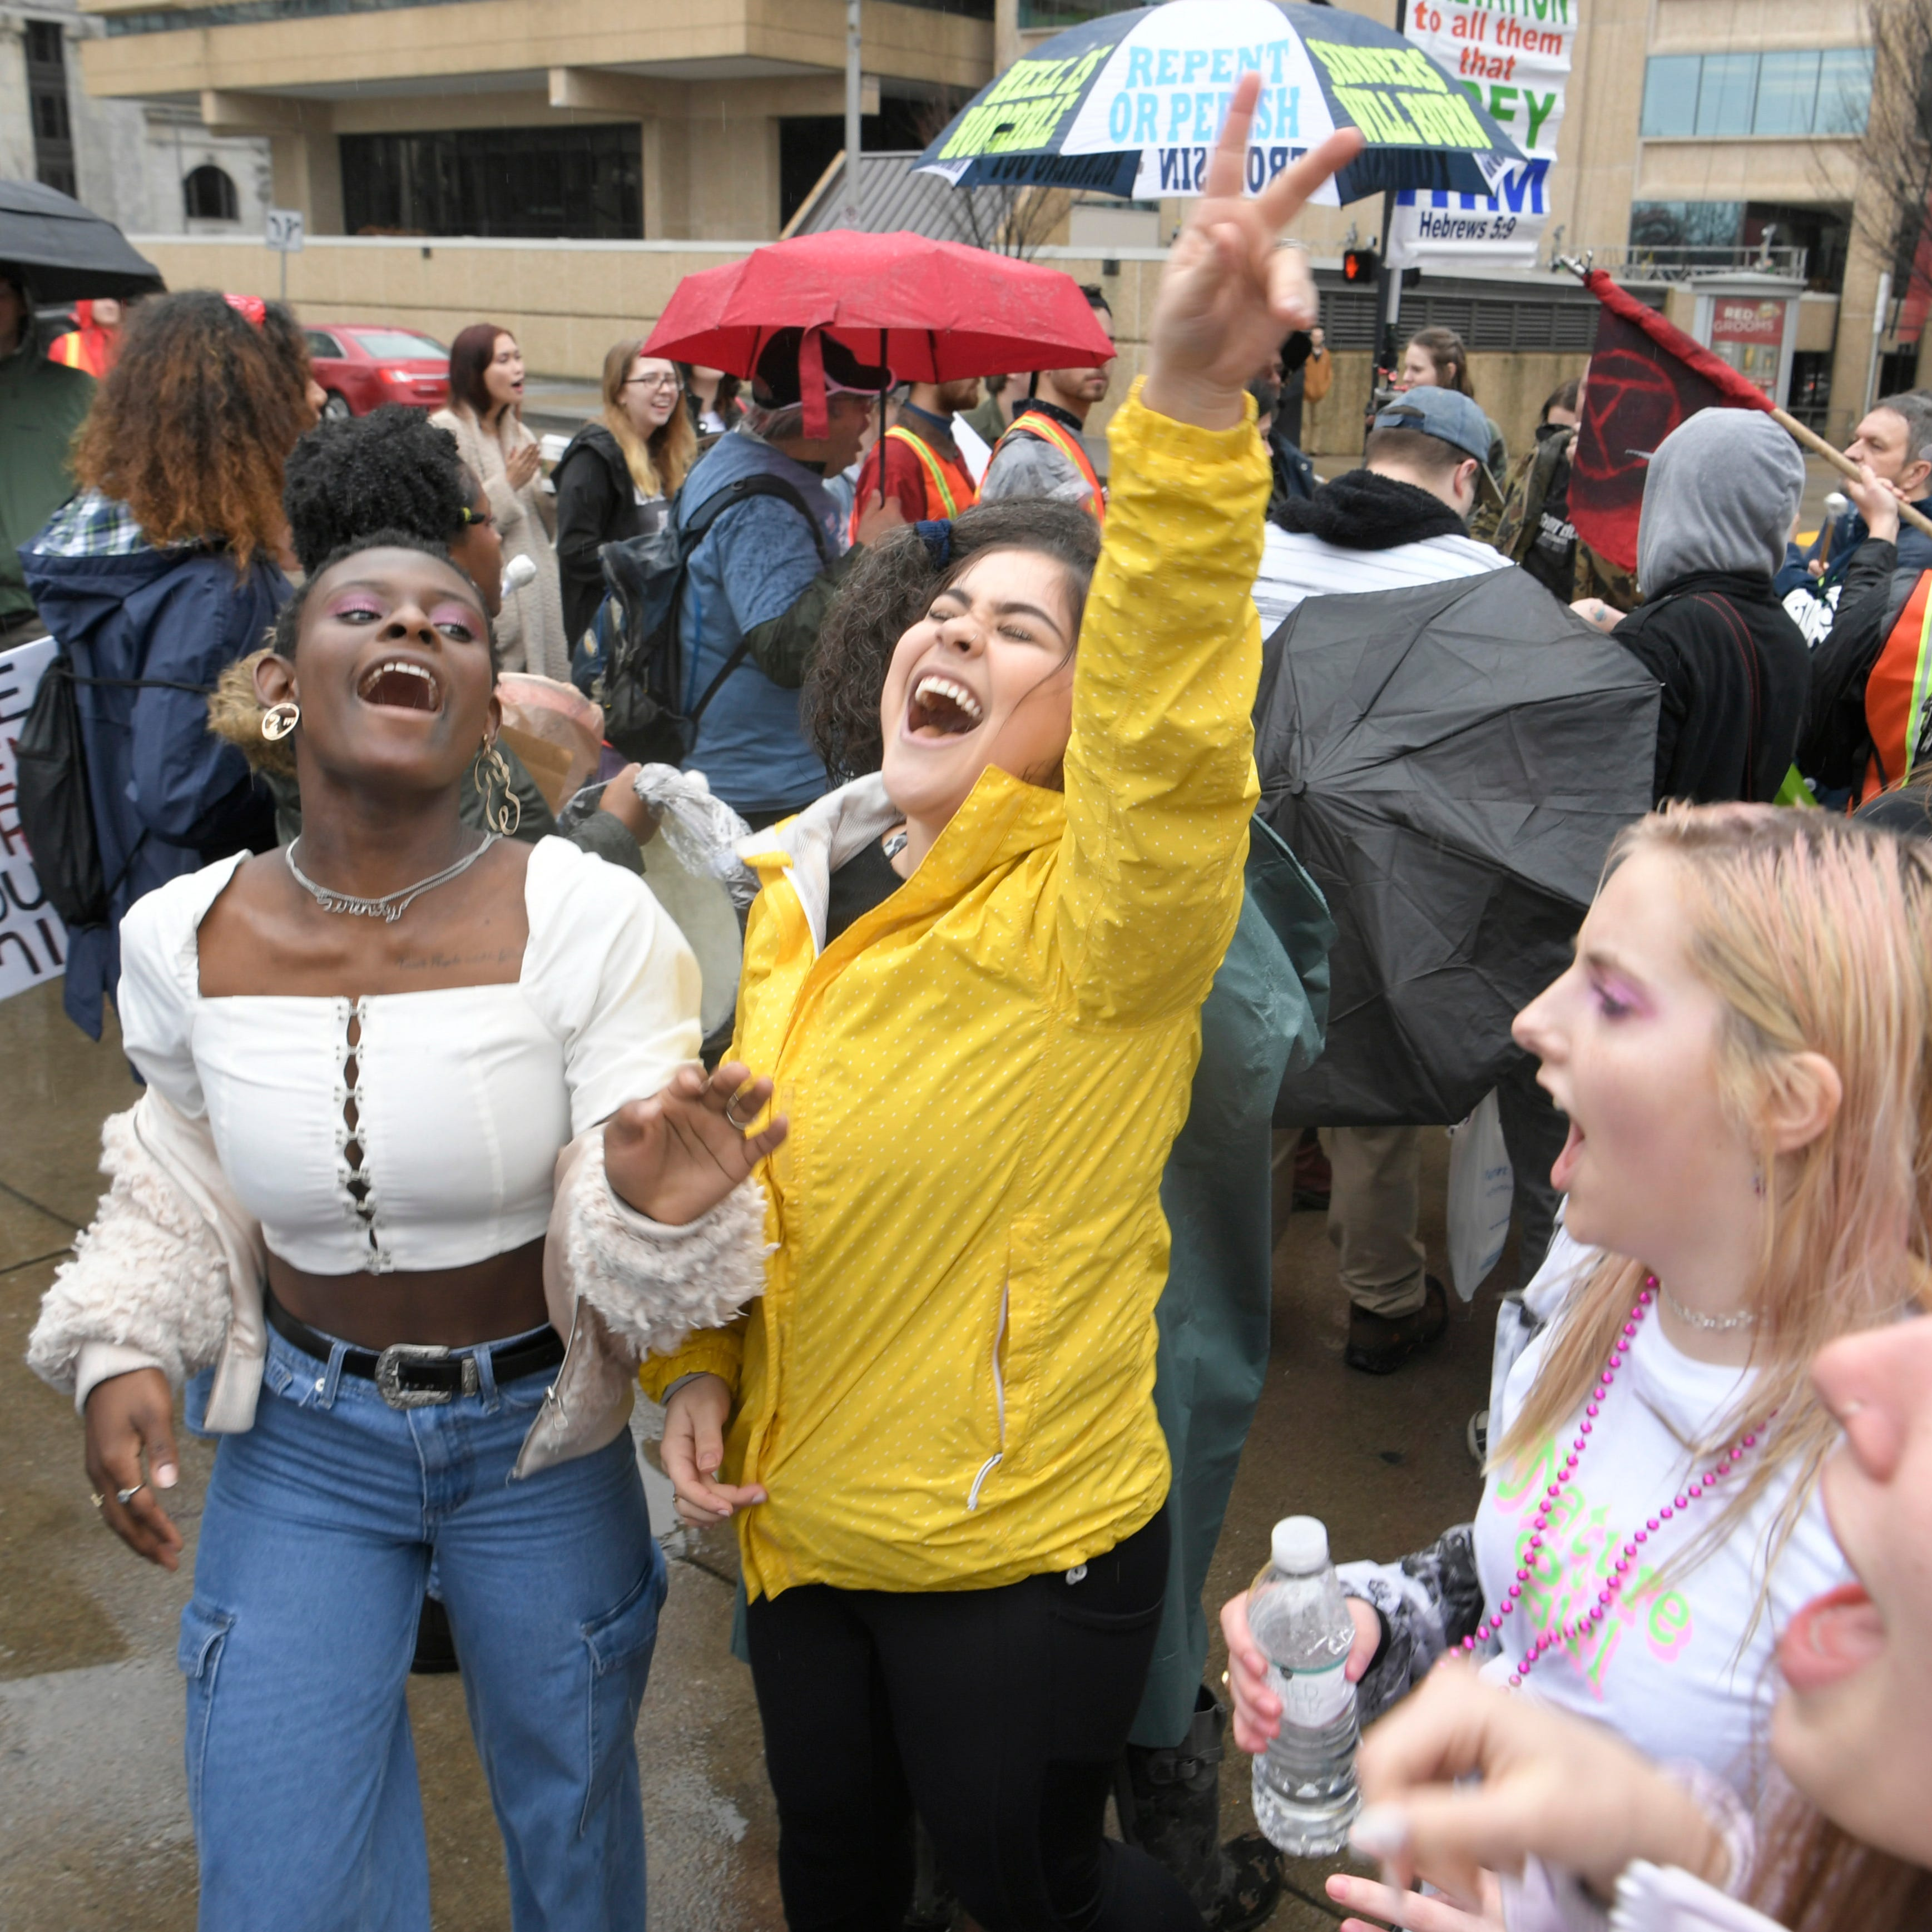 Hundreds participate in 2019 Women's Wave Rally in Nashville